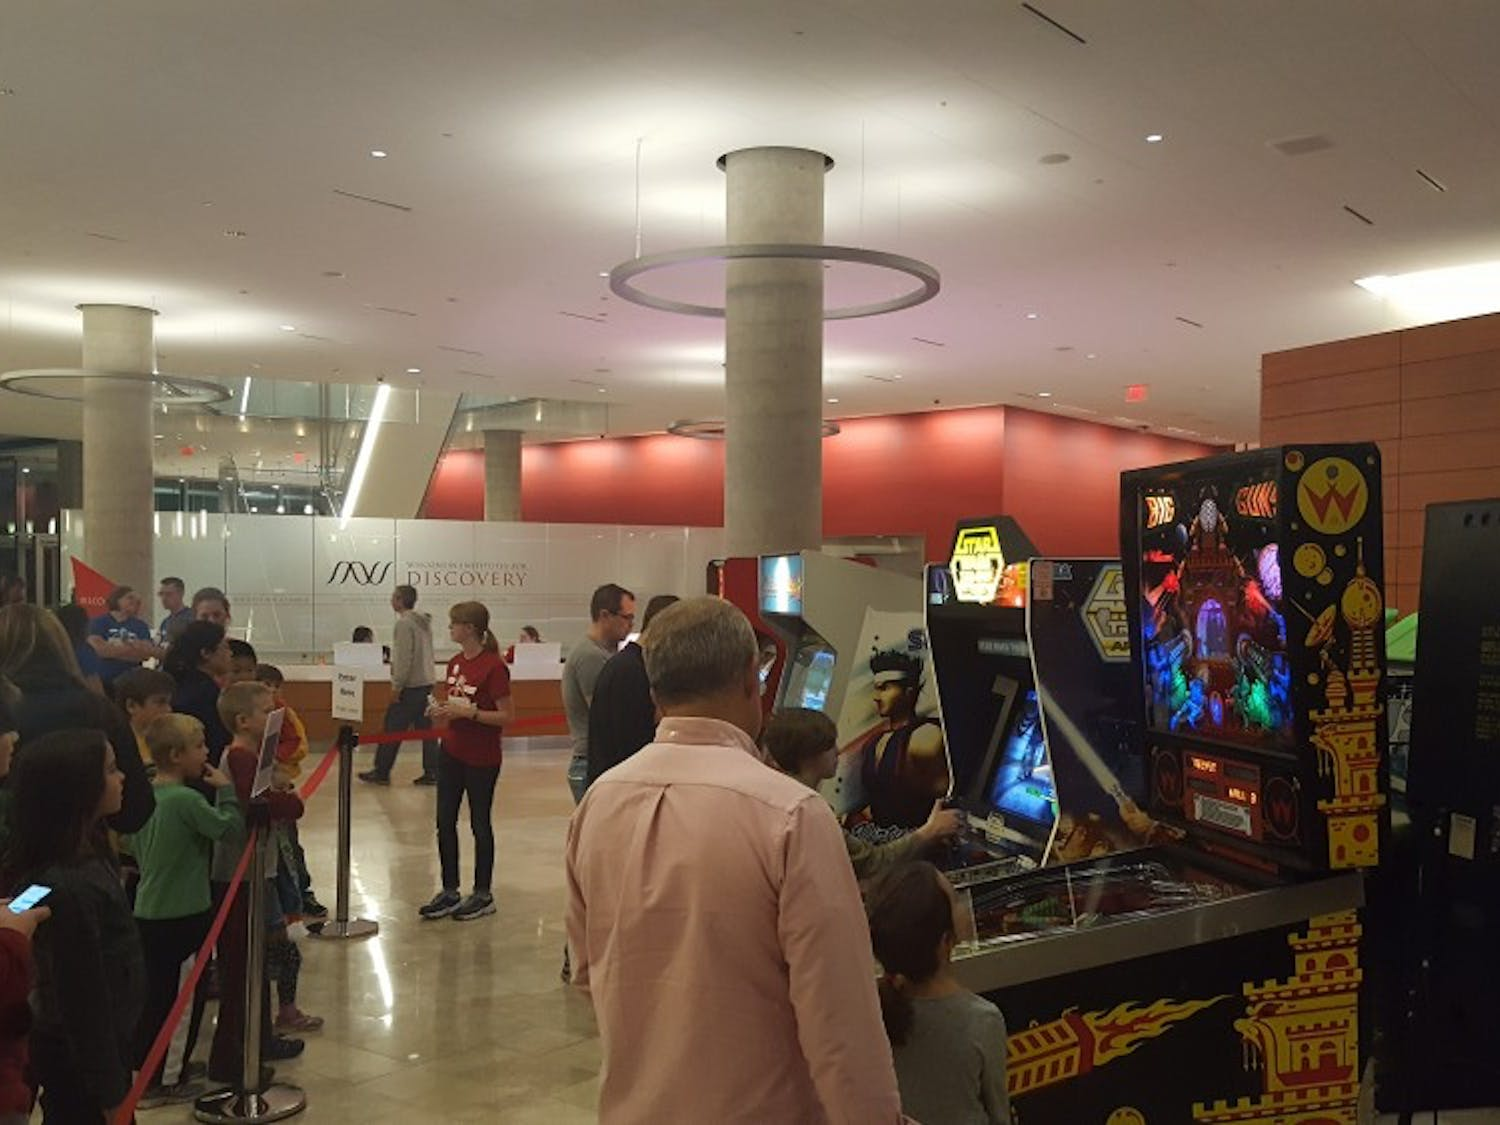 The Science Festival at the Wisconsin Institute for Discovery featured an array of vintage arcade style games that offered an opportunity for attendees of all ages to learn about science.